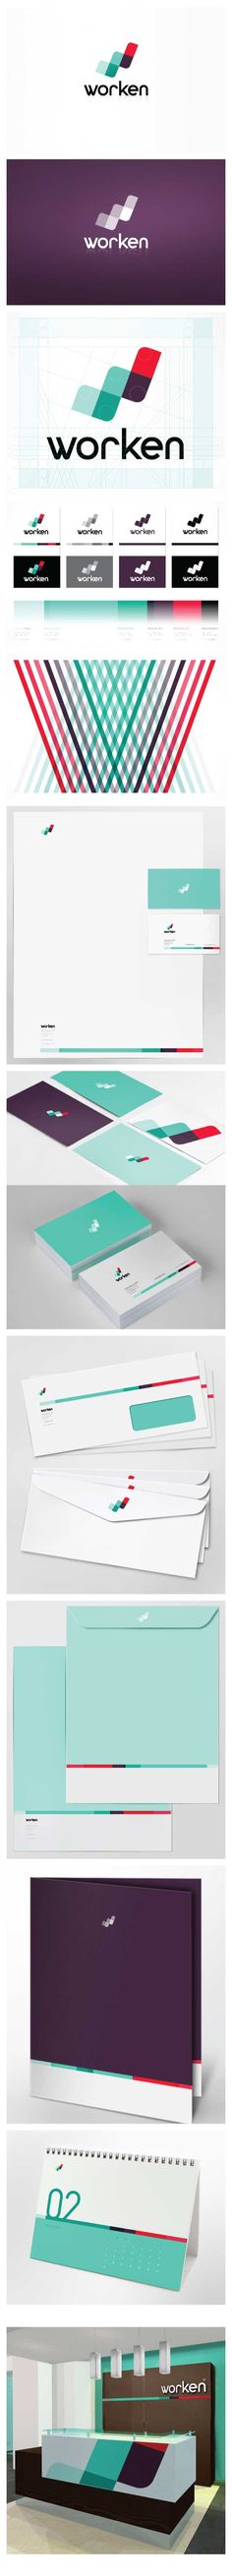 Worken #identity #brand - by Paola Flores | #stationary #corporate #design #corporatedesign #logo #identity #branding #marketing <<< repinned by an #advertising agency from #Hamburg / #Germany - www.BlickeDeeler.de | Follow us on www.facebook.com/BlickeDeeler